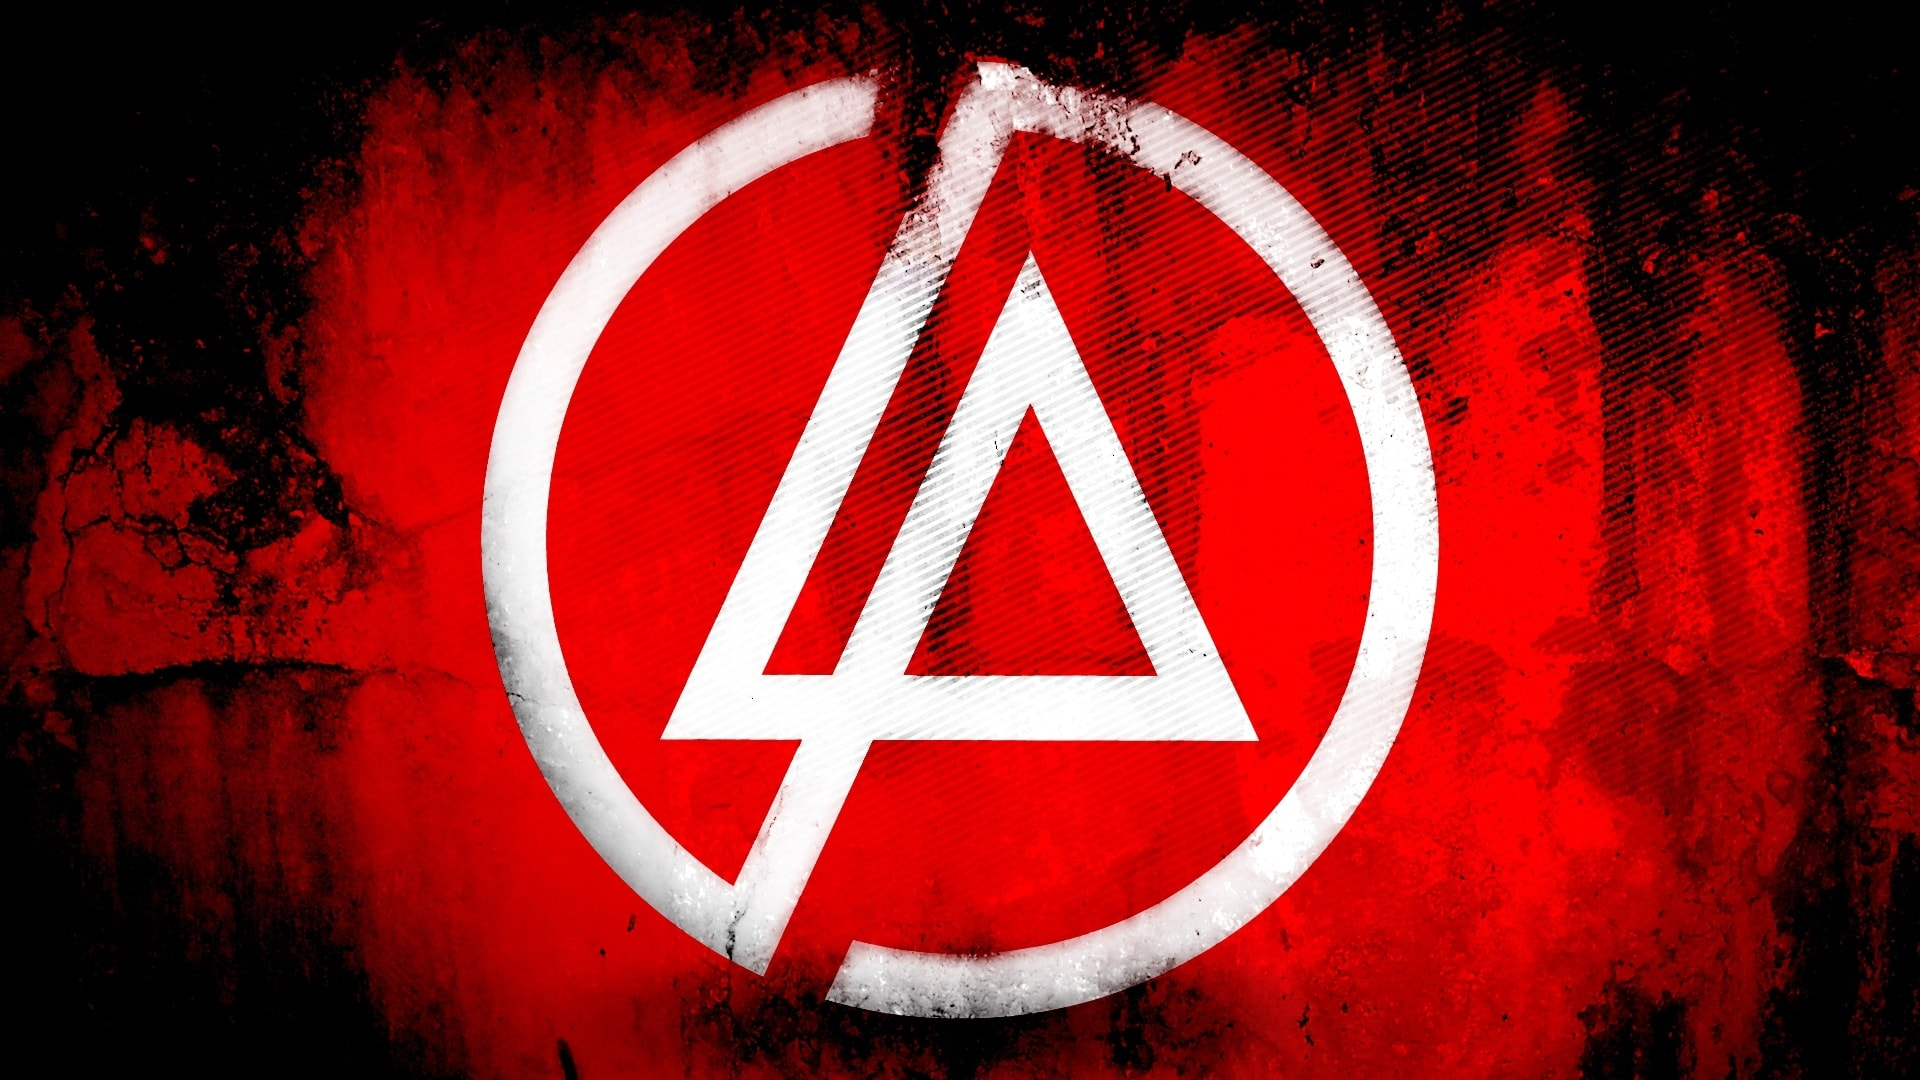 Linkin Park Hd Wallpapers 7wallpapers Net